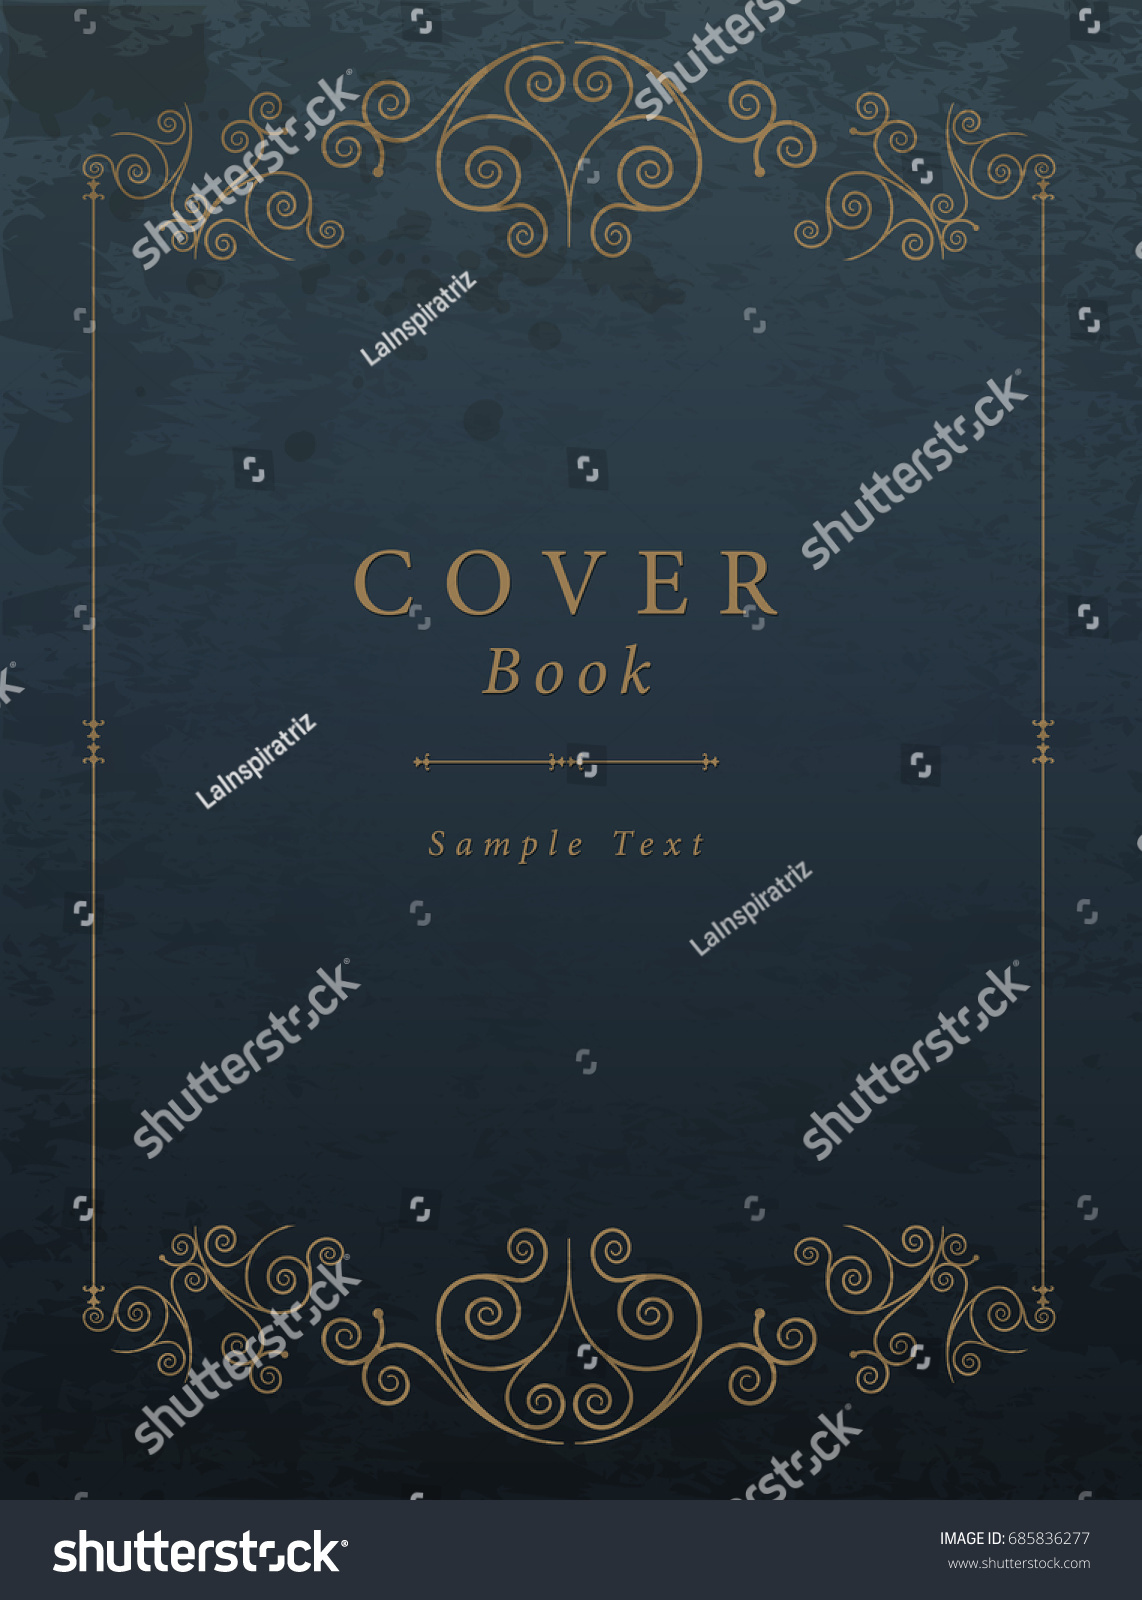 Old Book Cover Vector : Vintage book cover vector illustration stock